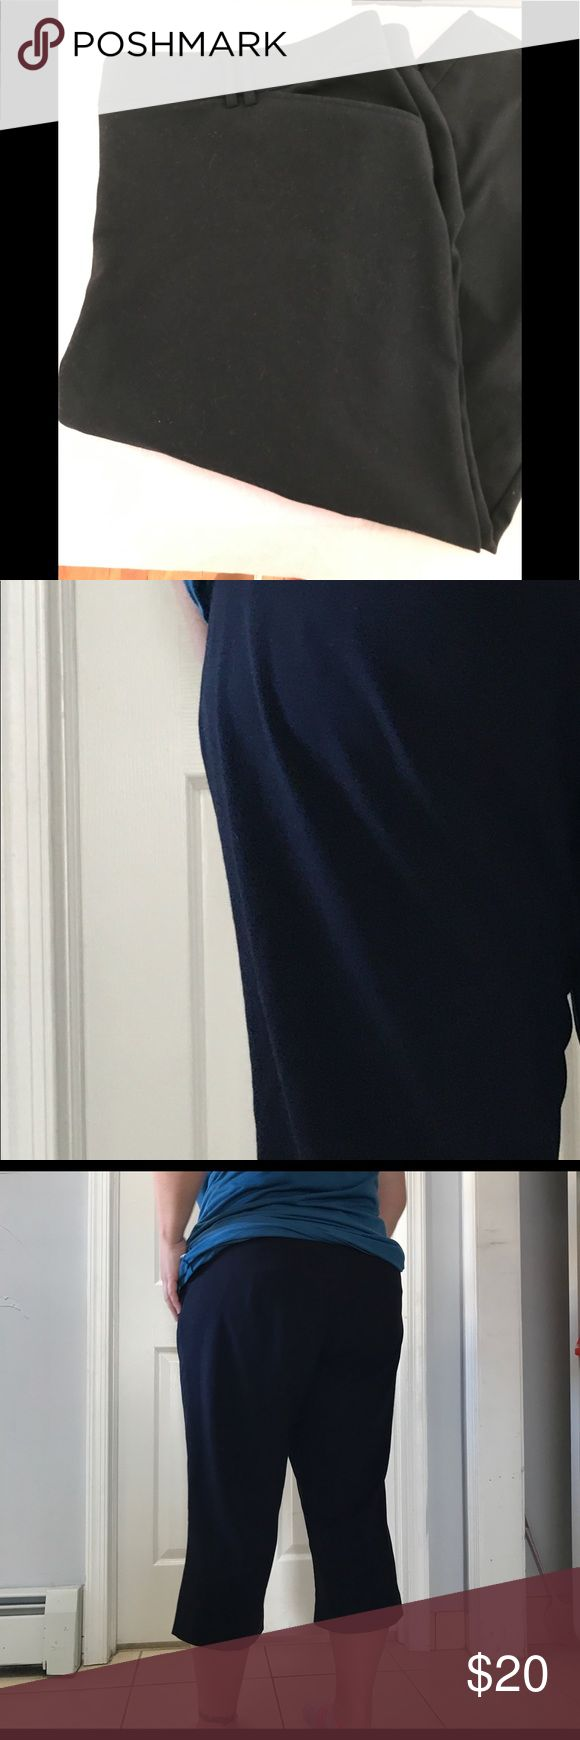 Dress Barn brand capri dress pants Worn very few times. EXCELLENT CONDITION. Navy blue Dress Barn Capri style dress pants. The material feels and looks like that of dress pants, so you can dress them up or wear as casual. There is one close up picture to show the true Navy blue color (other pictures the navy doesn't show well). There is stretch in the waist and button/zipper. Pockets in front and back. They're loose on me, so I posted a picture of myself from the back side to show the length…